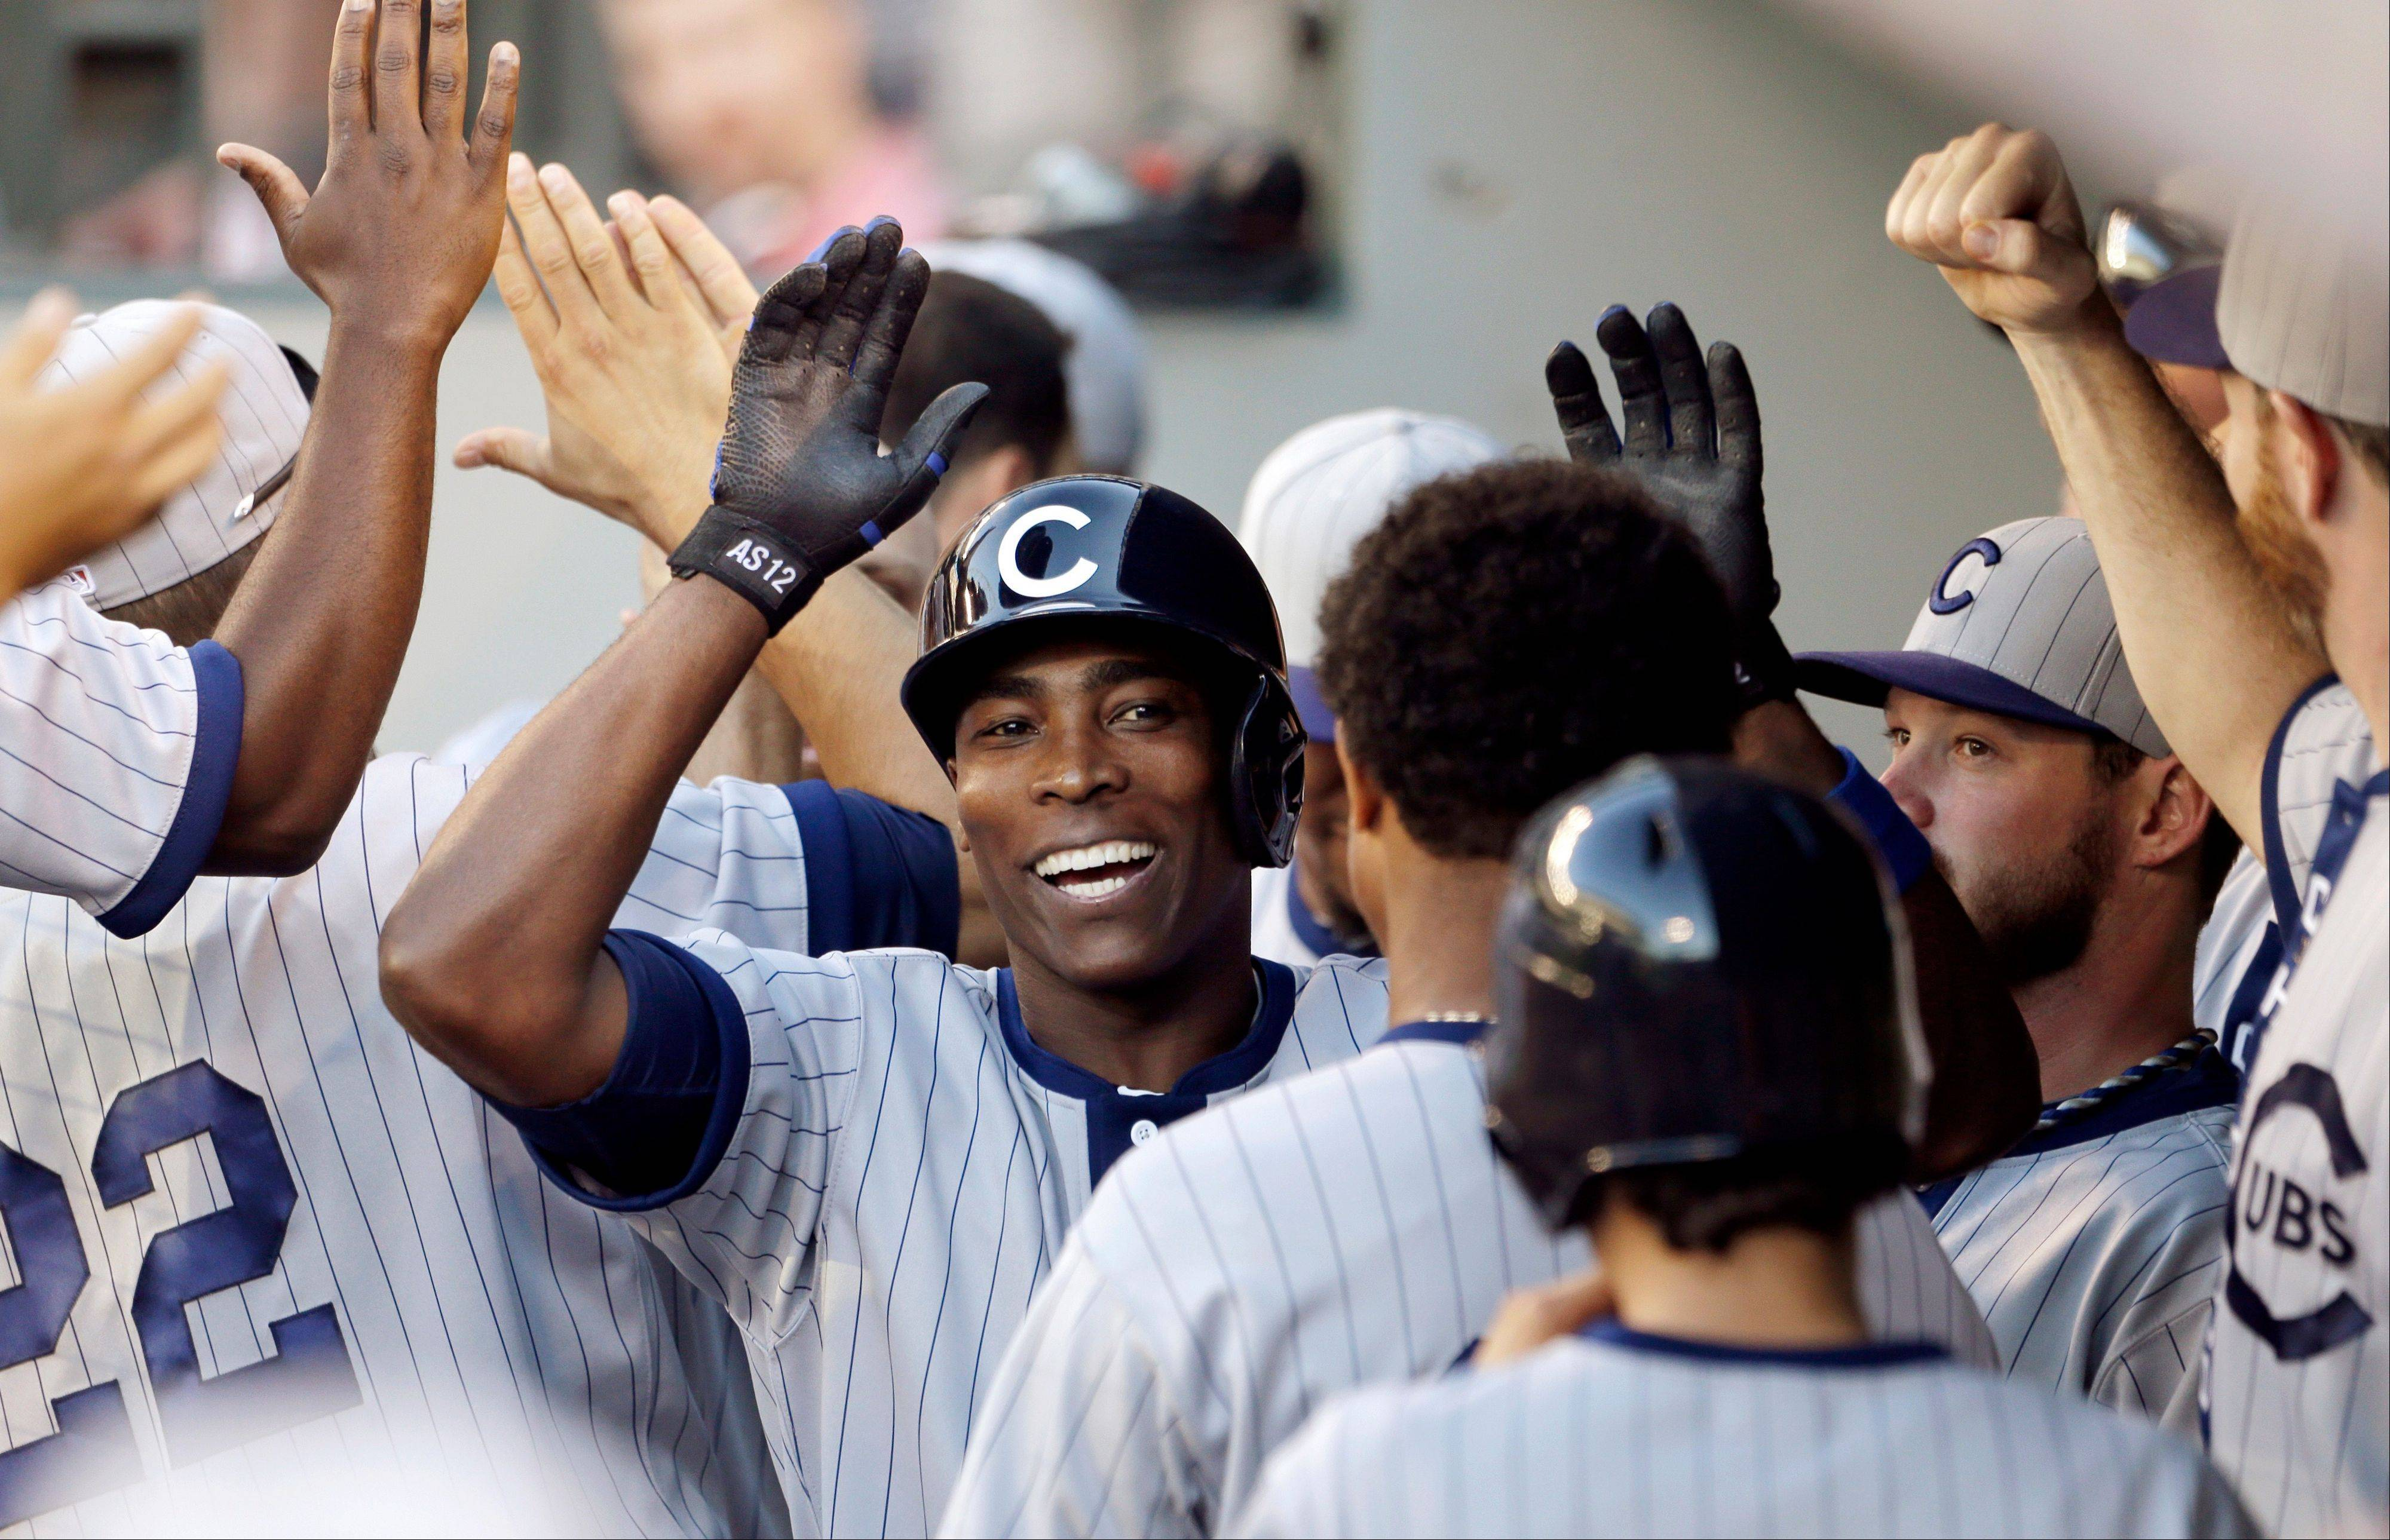 The Cubs' Alfonso Soriano gets congratulations for his two-run home run against the Seattle Mariners in the 11th inning of Saturday's game in Seattle. The Cubs won 5-3.